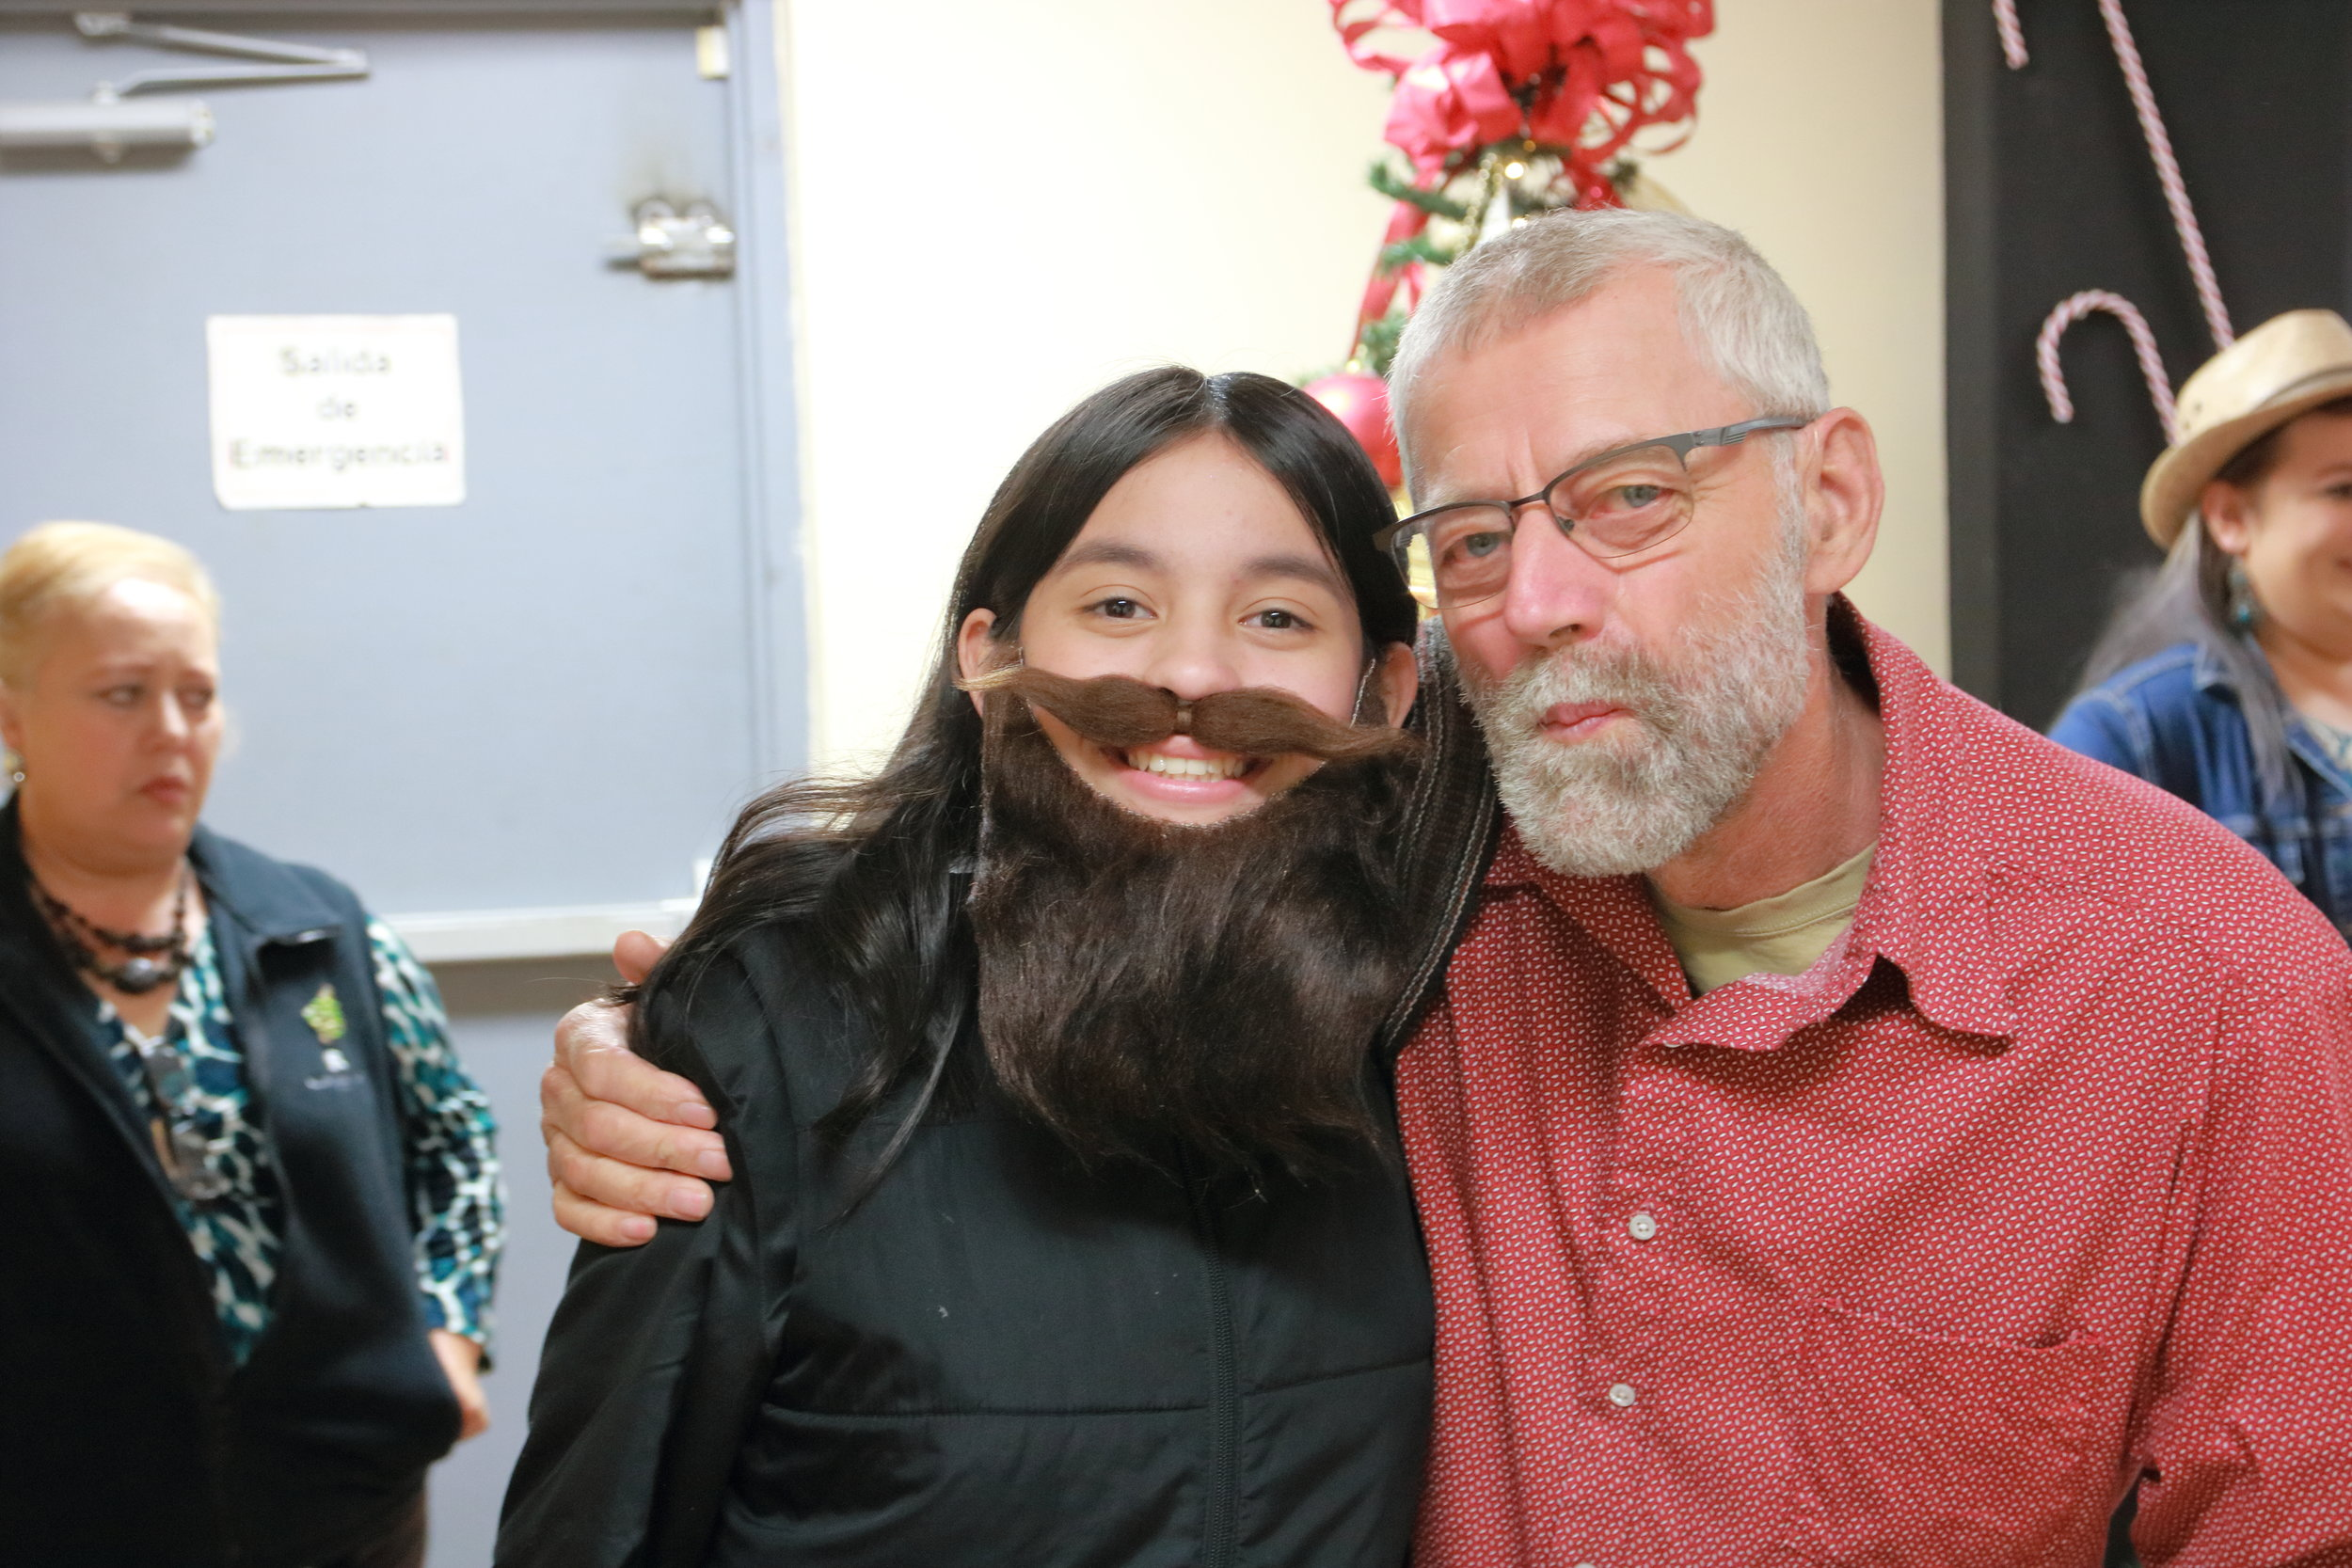 Who has the best beard? - This young lady is getting ready for a Christmas play.